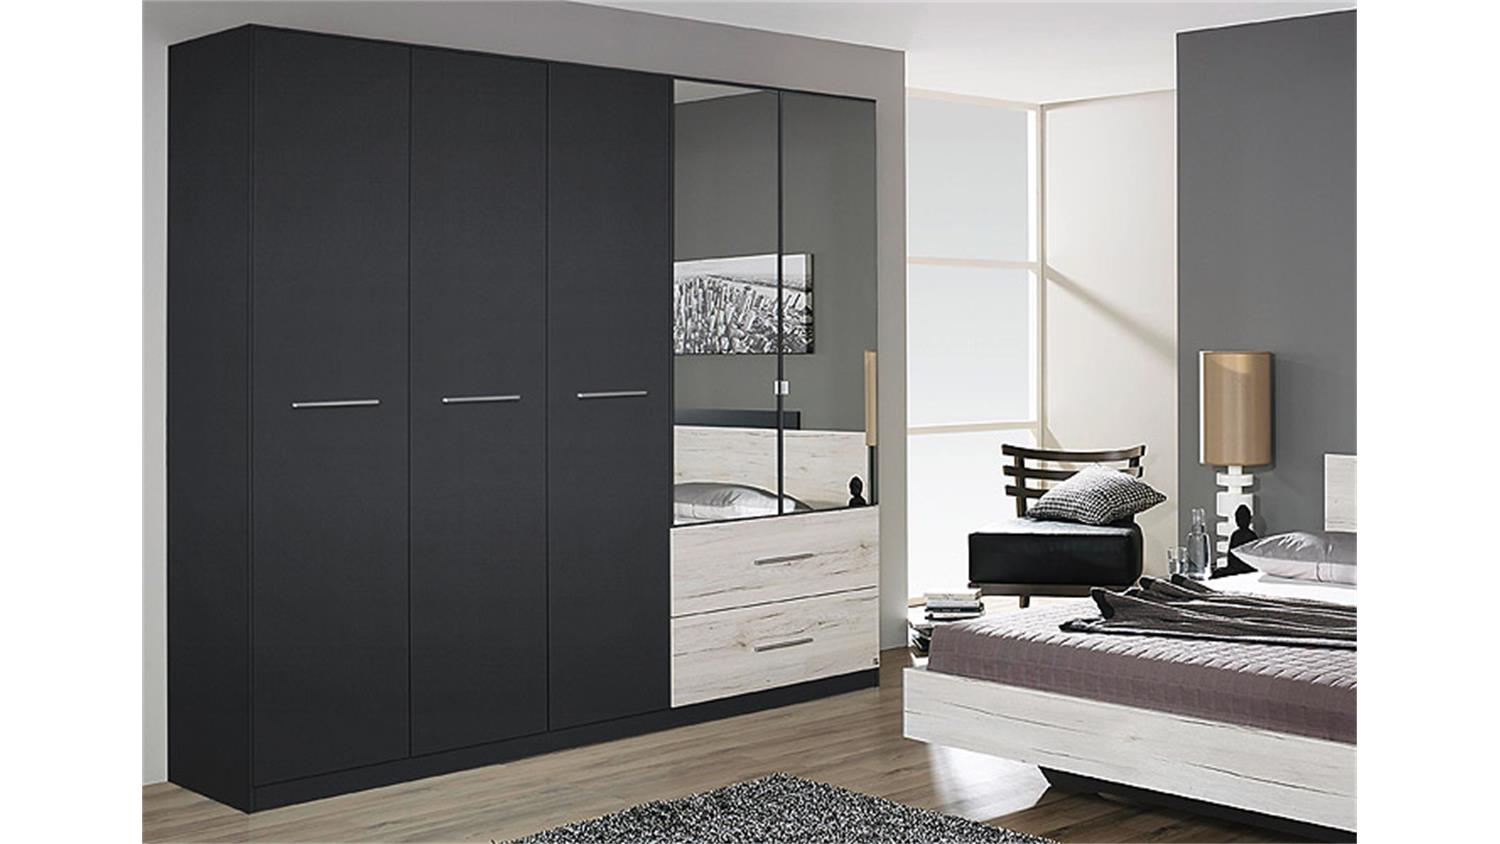 kleiderschrank saragossa grau metallic eiche sanremo wei. Black Bedroom Furniture Sets. Home Design Ideas